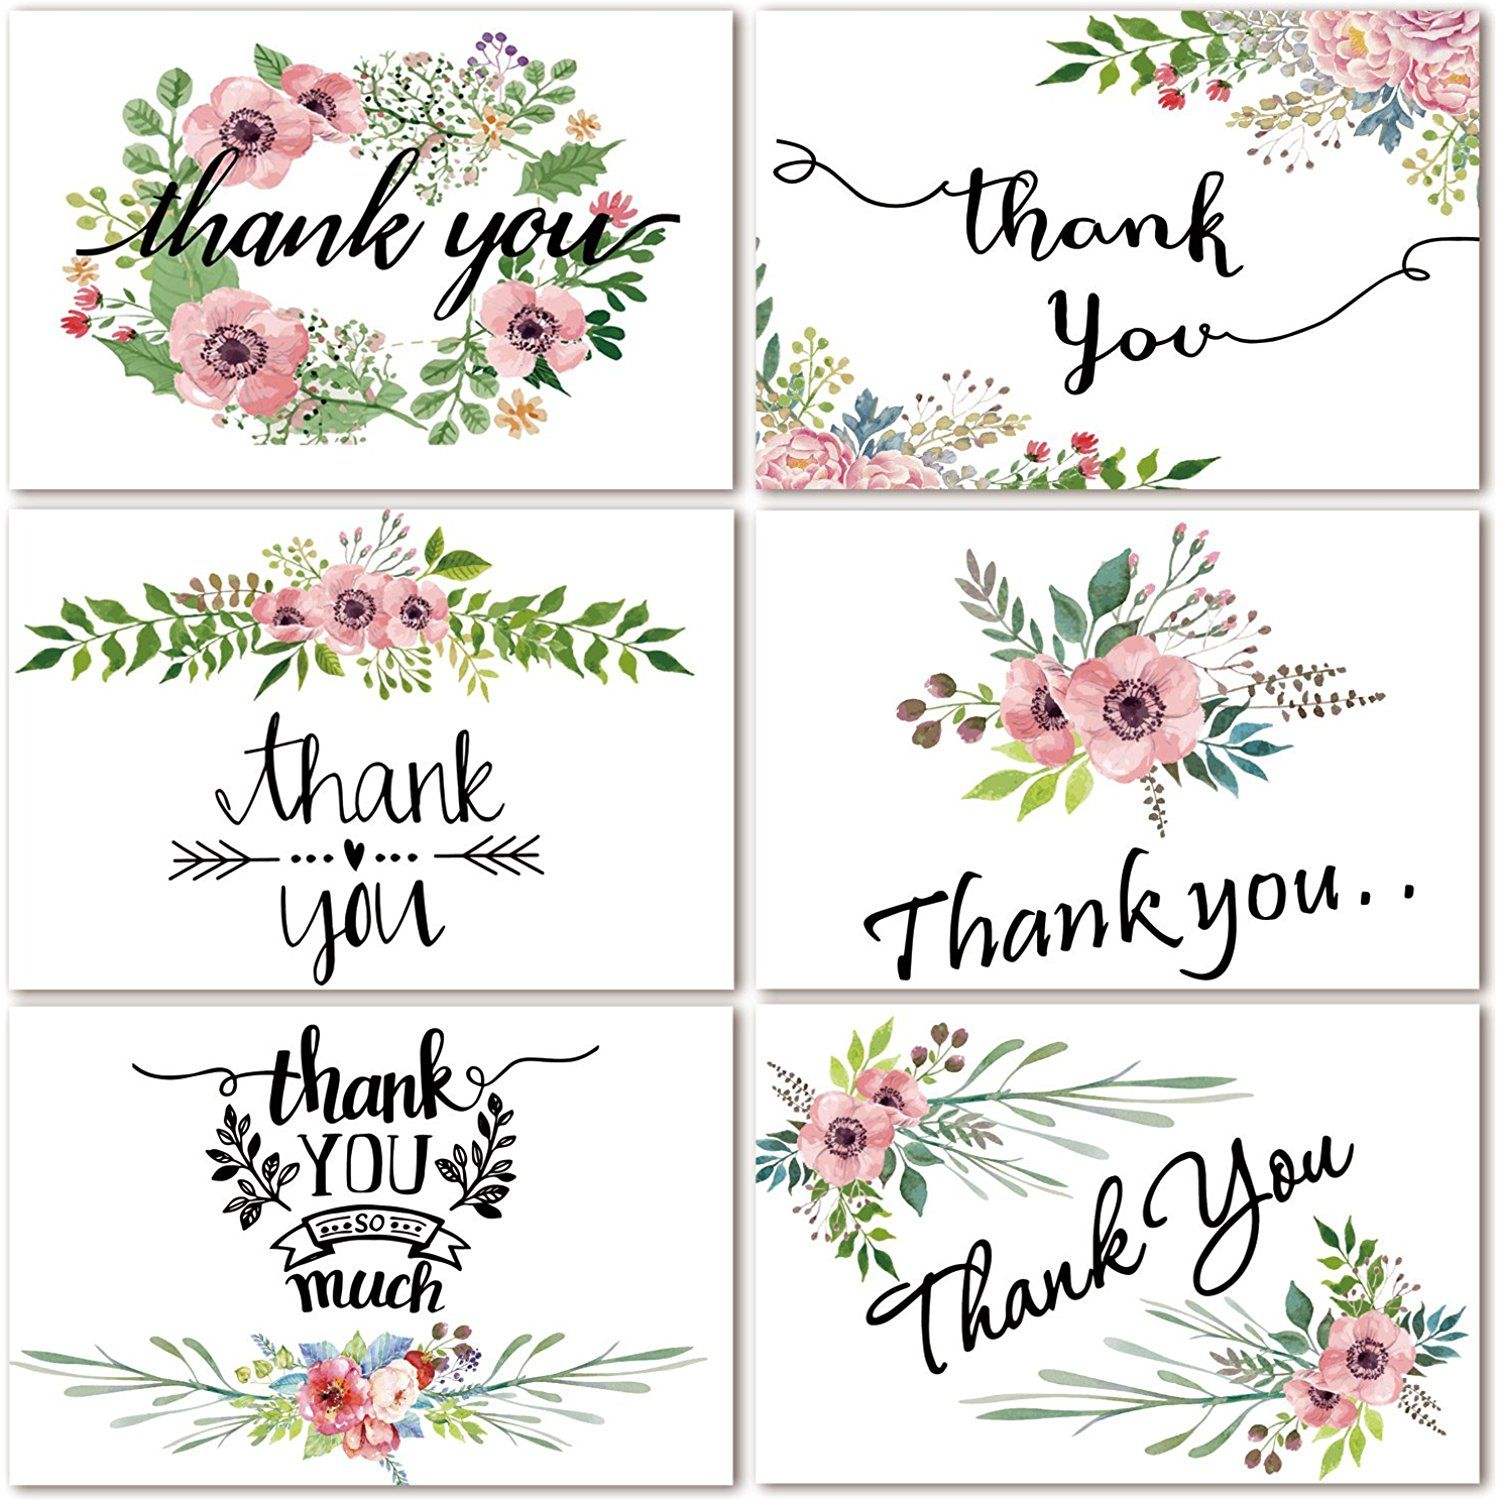 Thank You Cards Floral Flower Greeting Cards 48 Assorted Bulk Box